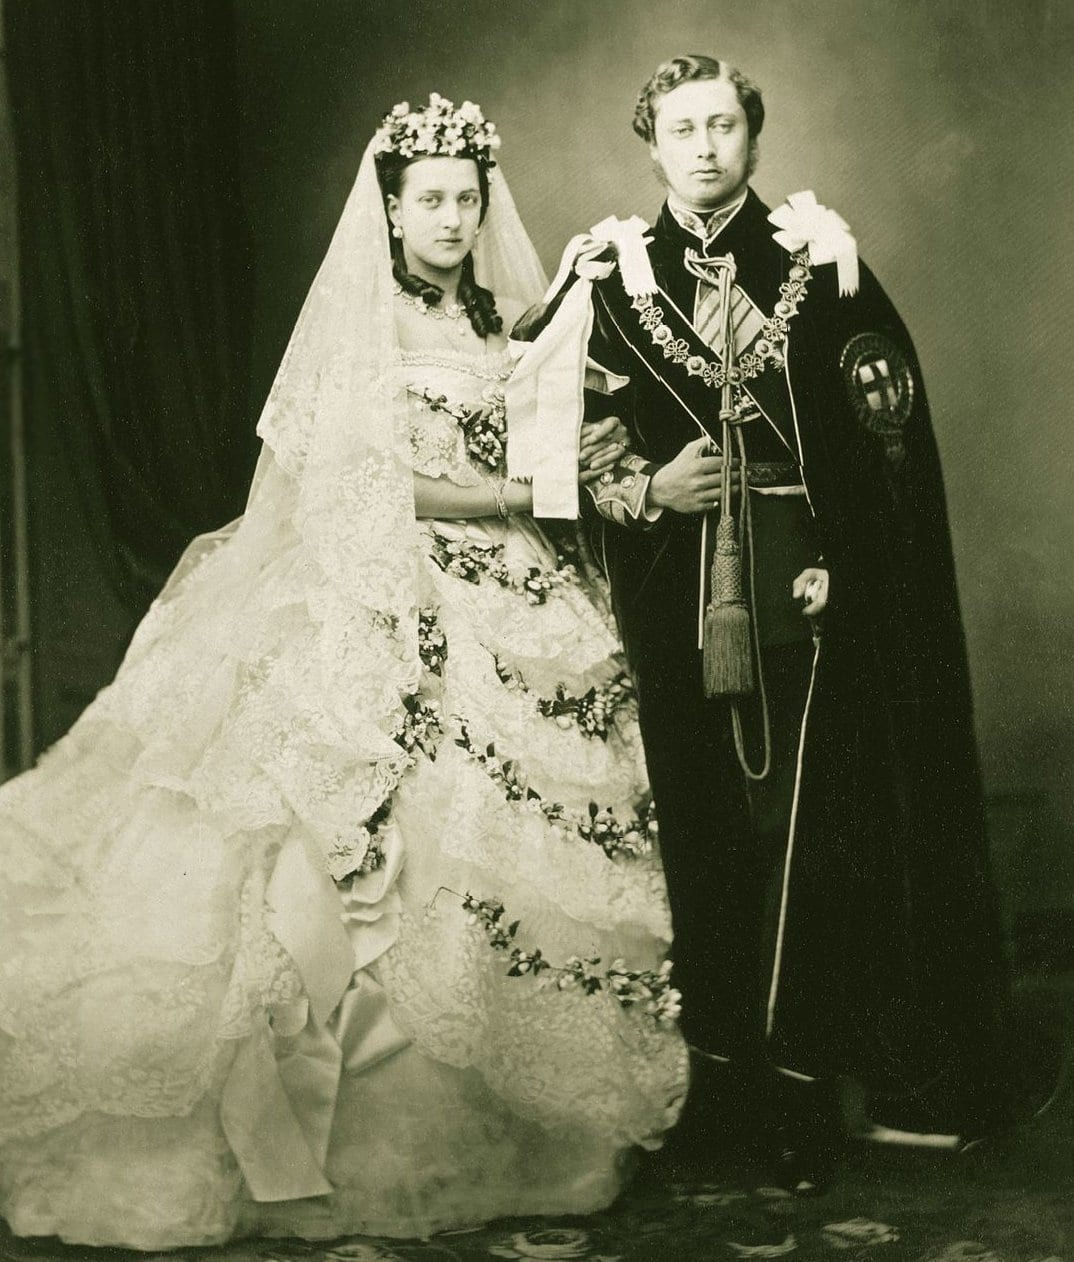 Edward and Alexandra - the Prince and Princess of Wales in 1863. | Photo: John Jabez Edwin Mayal  - wikimedia cc pdm.